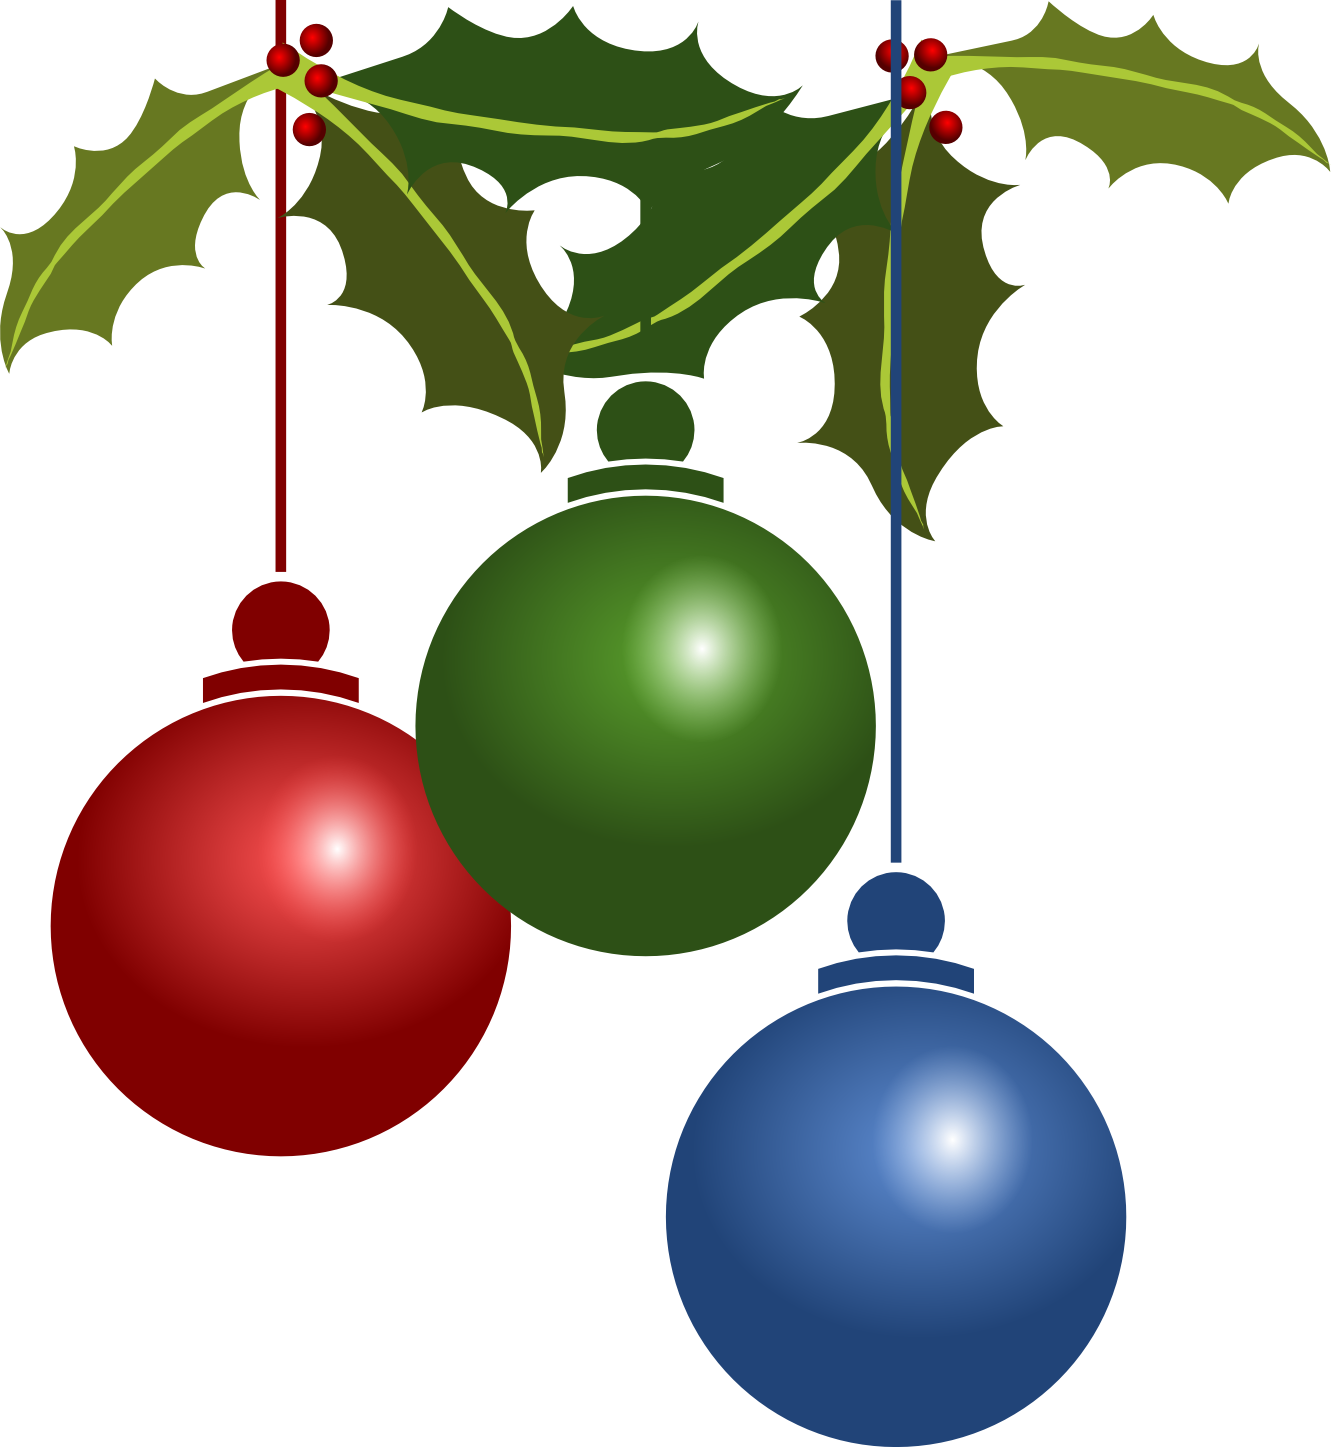 Holiday free clipart christmas image transparent stock Free Images Holiday, Download Free Clip Art, Free Clip Art ... image transparent stock